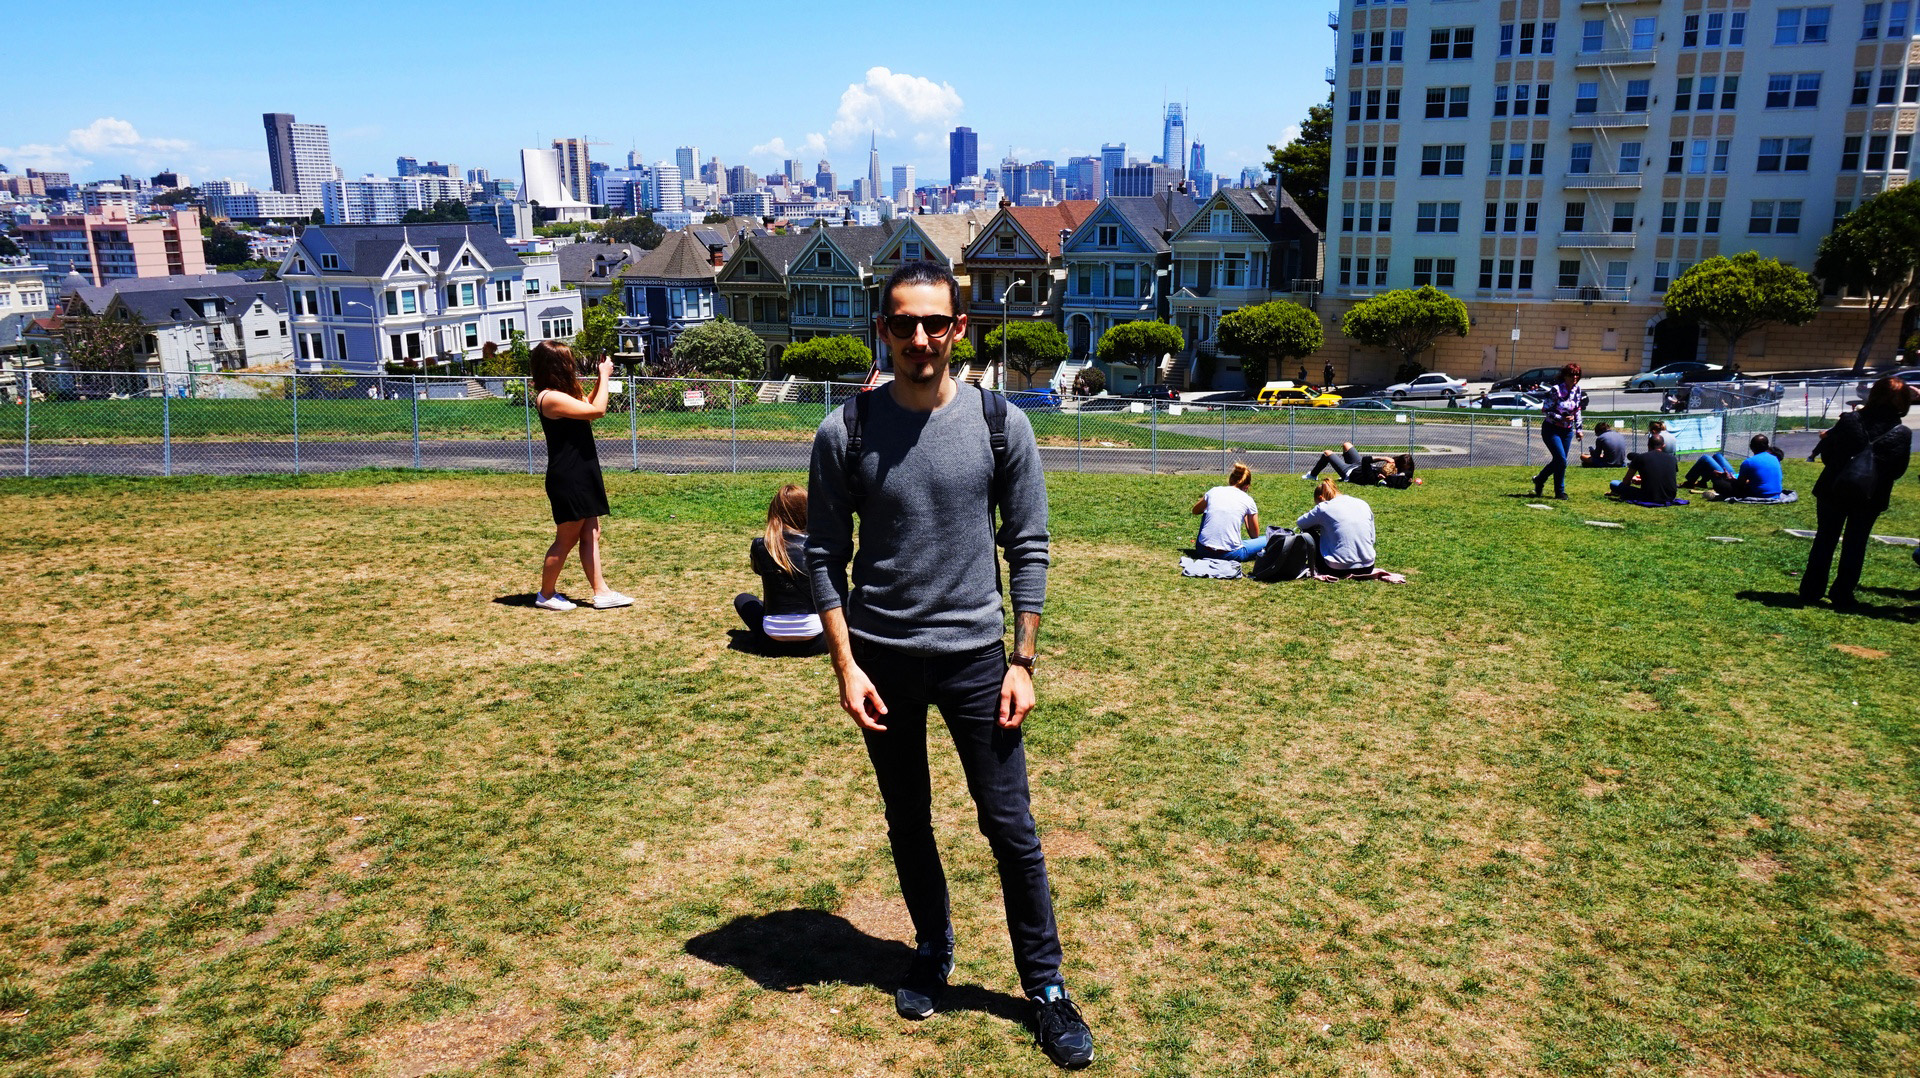 Selfie Przemka na tle Alamo Square w San Francisco, USA | Sway the way